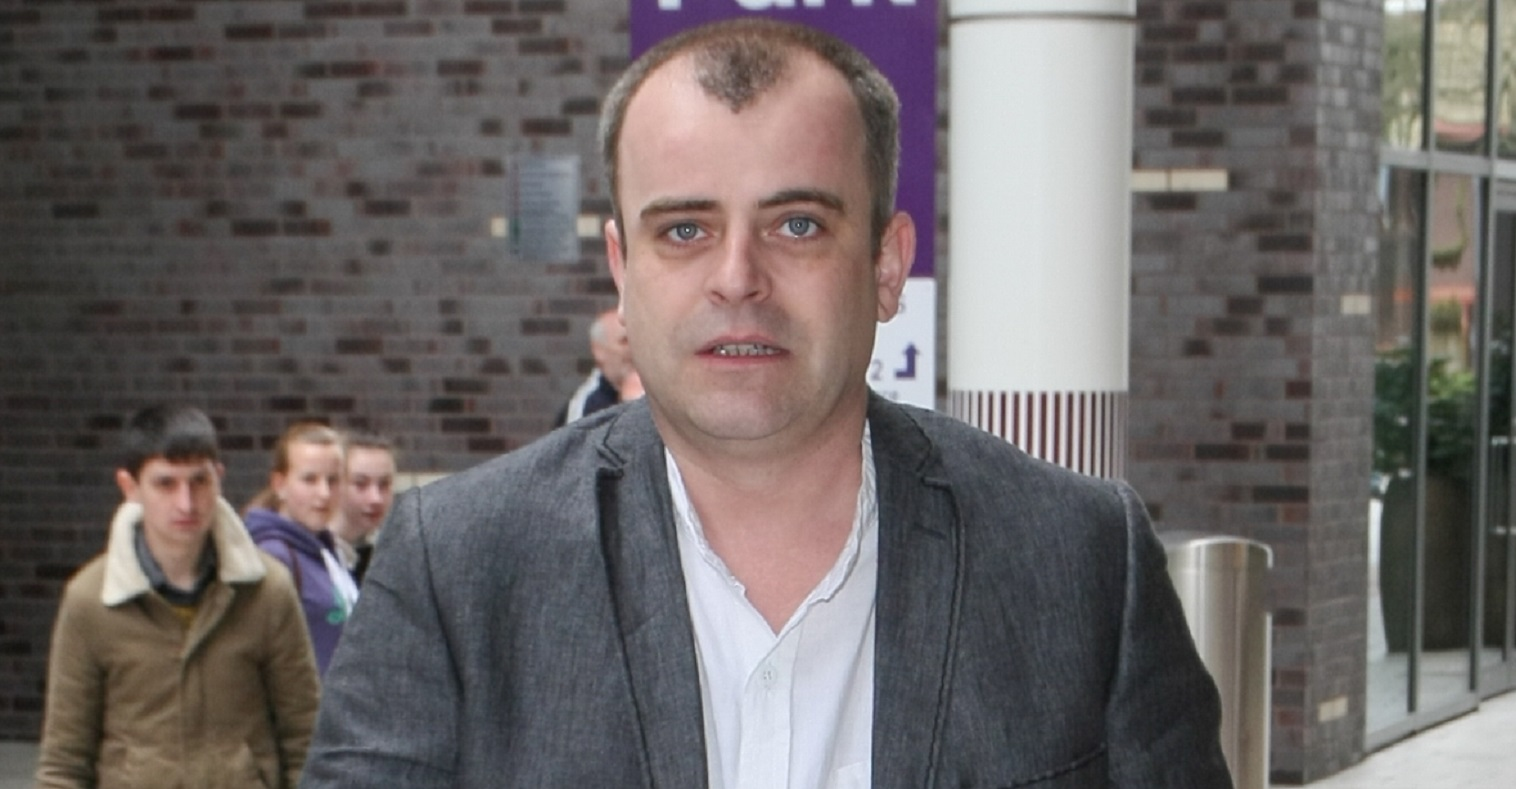 Coronation Street actor Simon Gregson responds after backlash over Dominic Cummings tweets